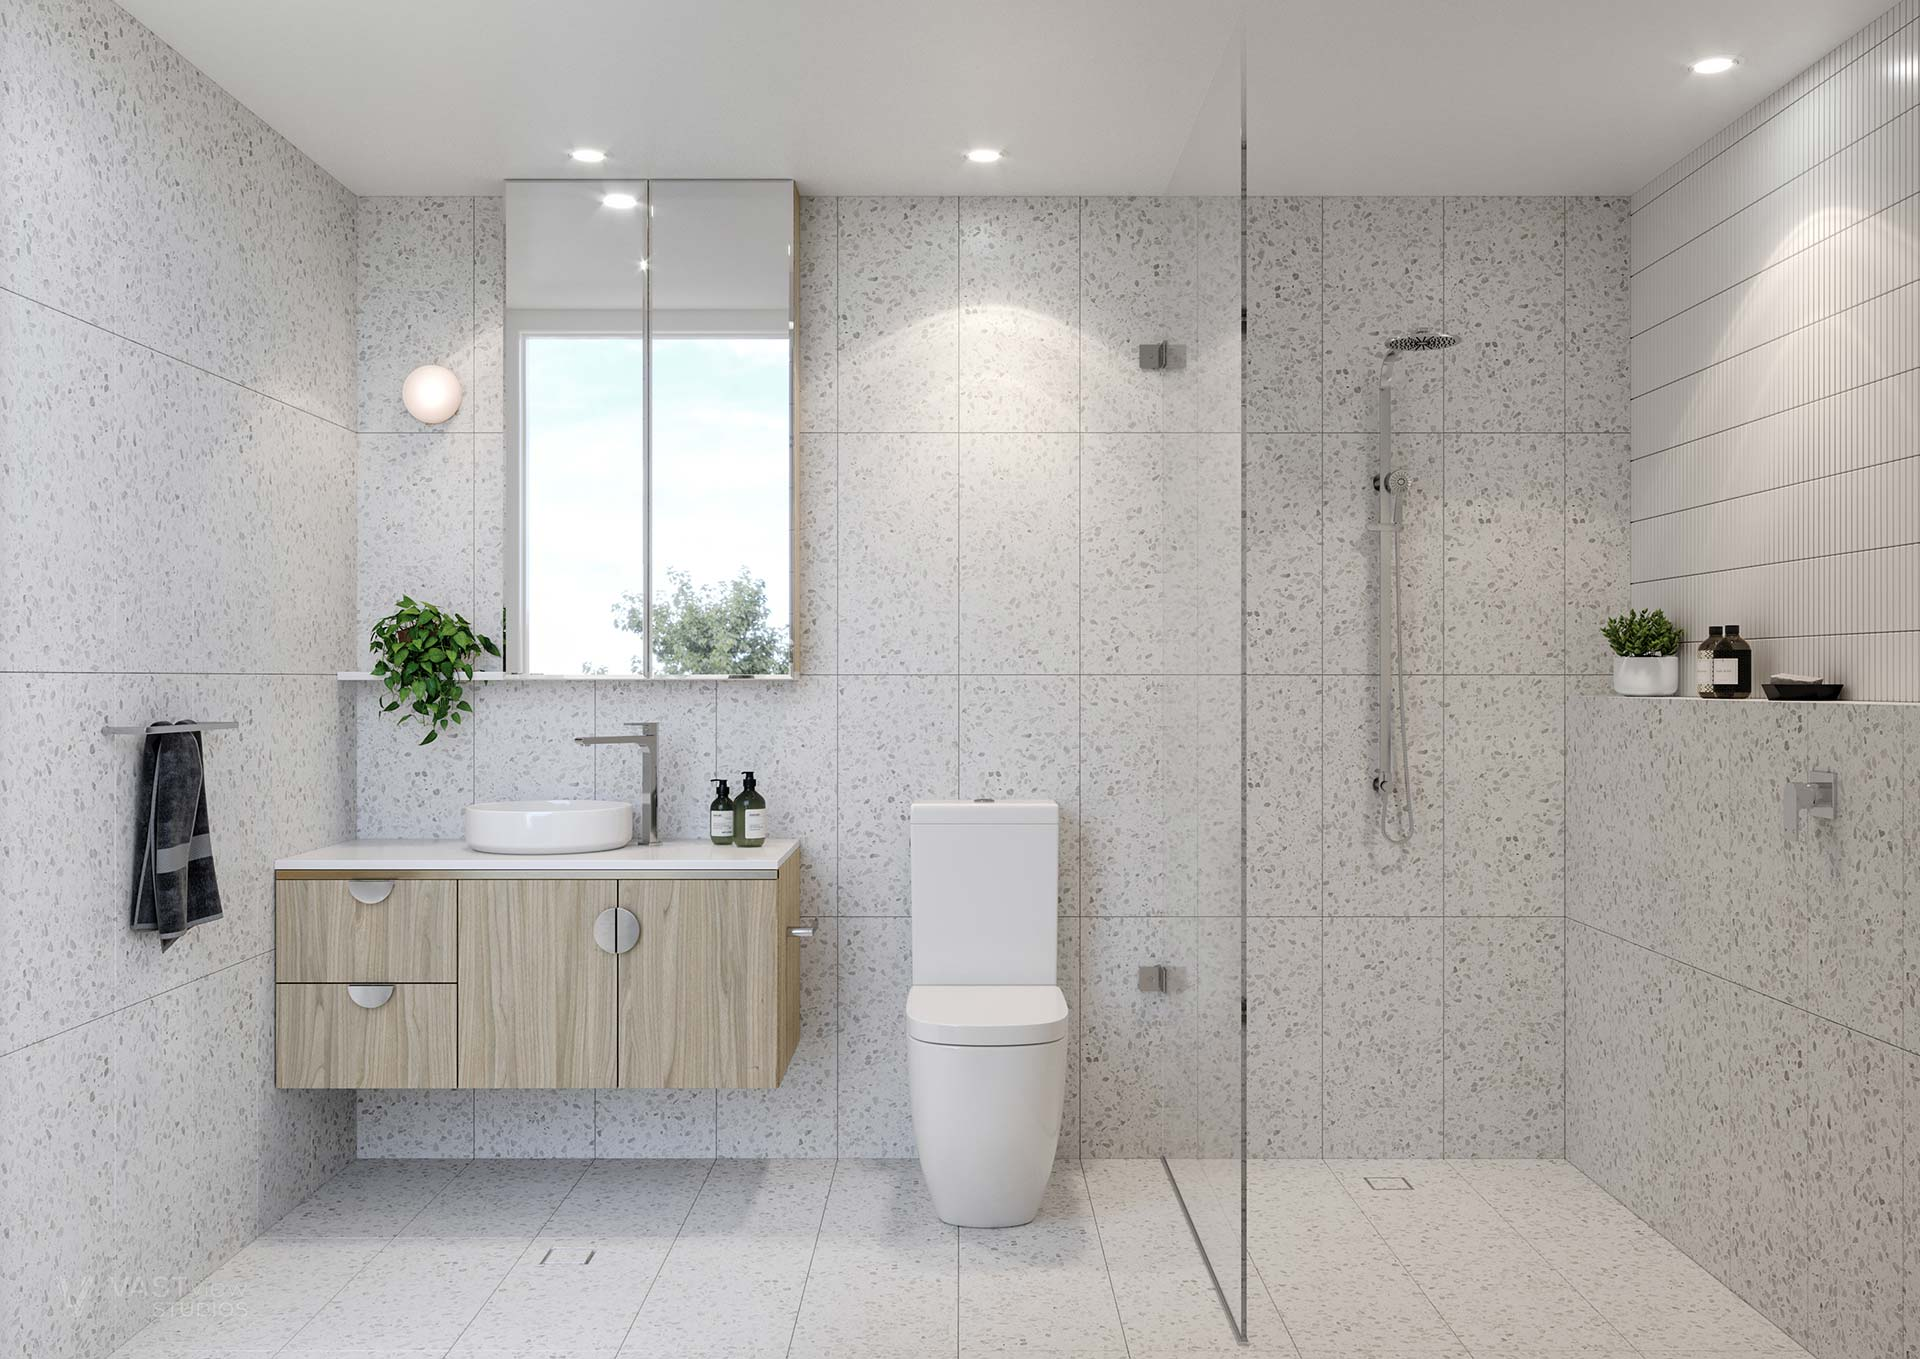 EdenParkside_Bathroom_FinalRender_v1.0